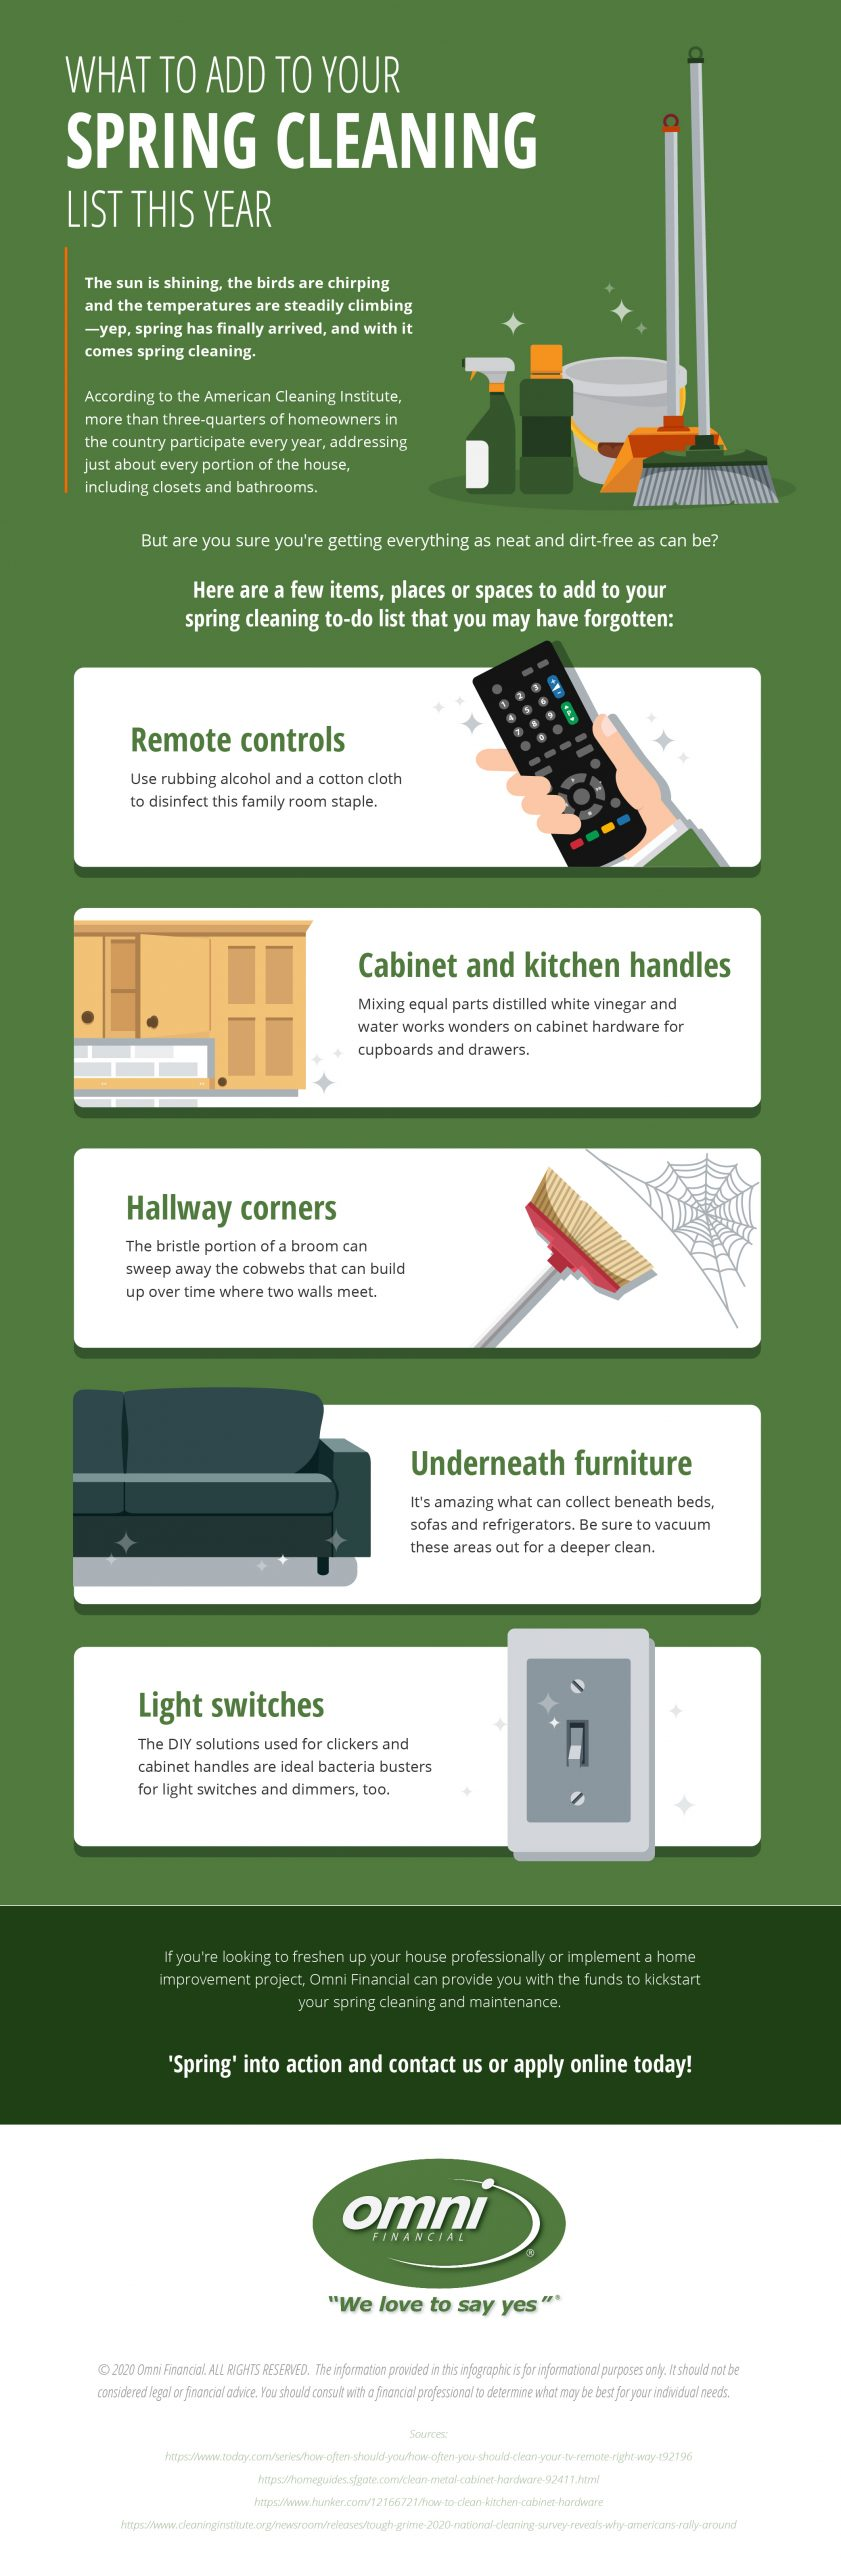 What to add to your spring cleaning list this year